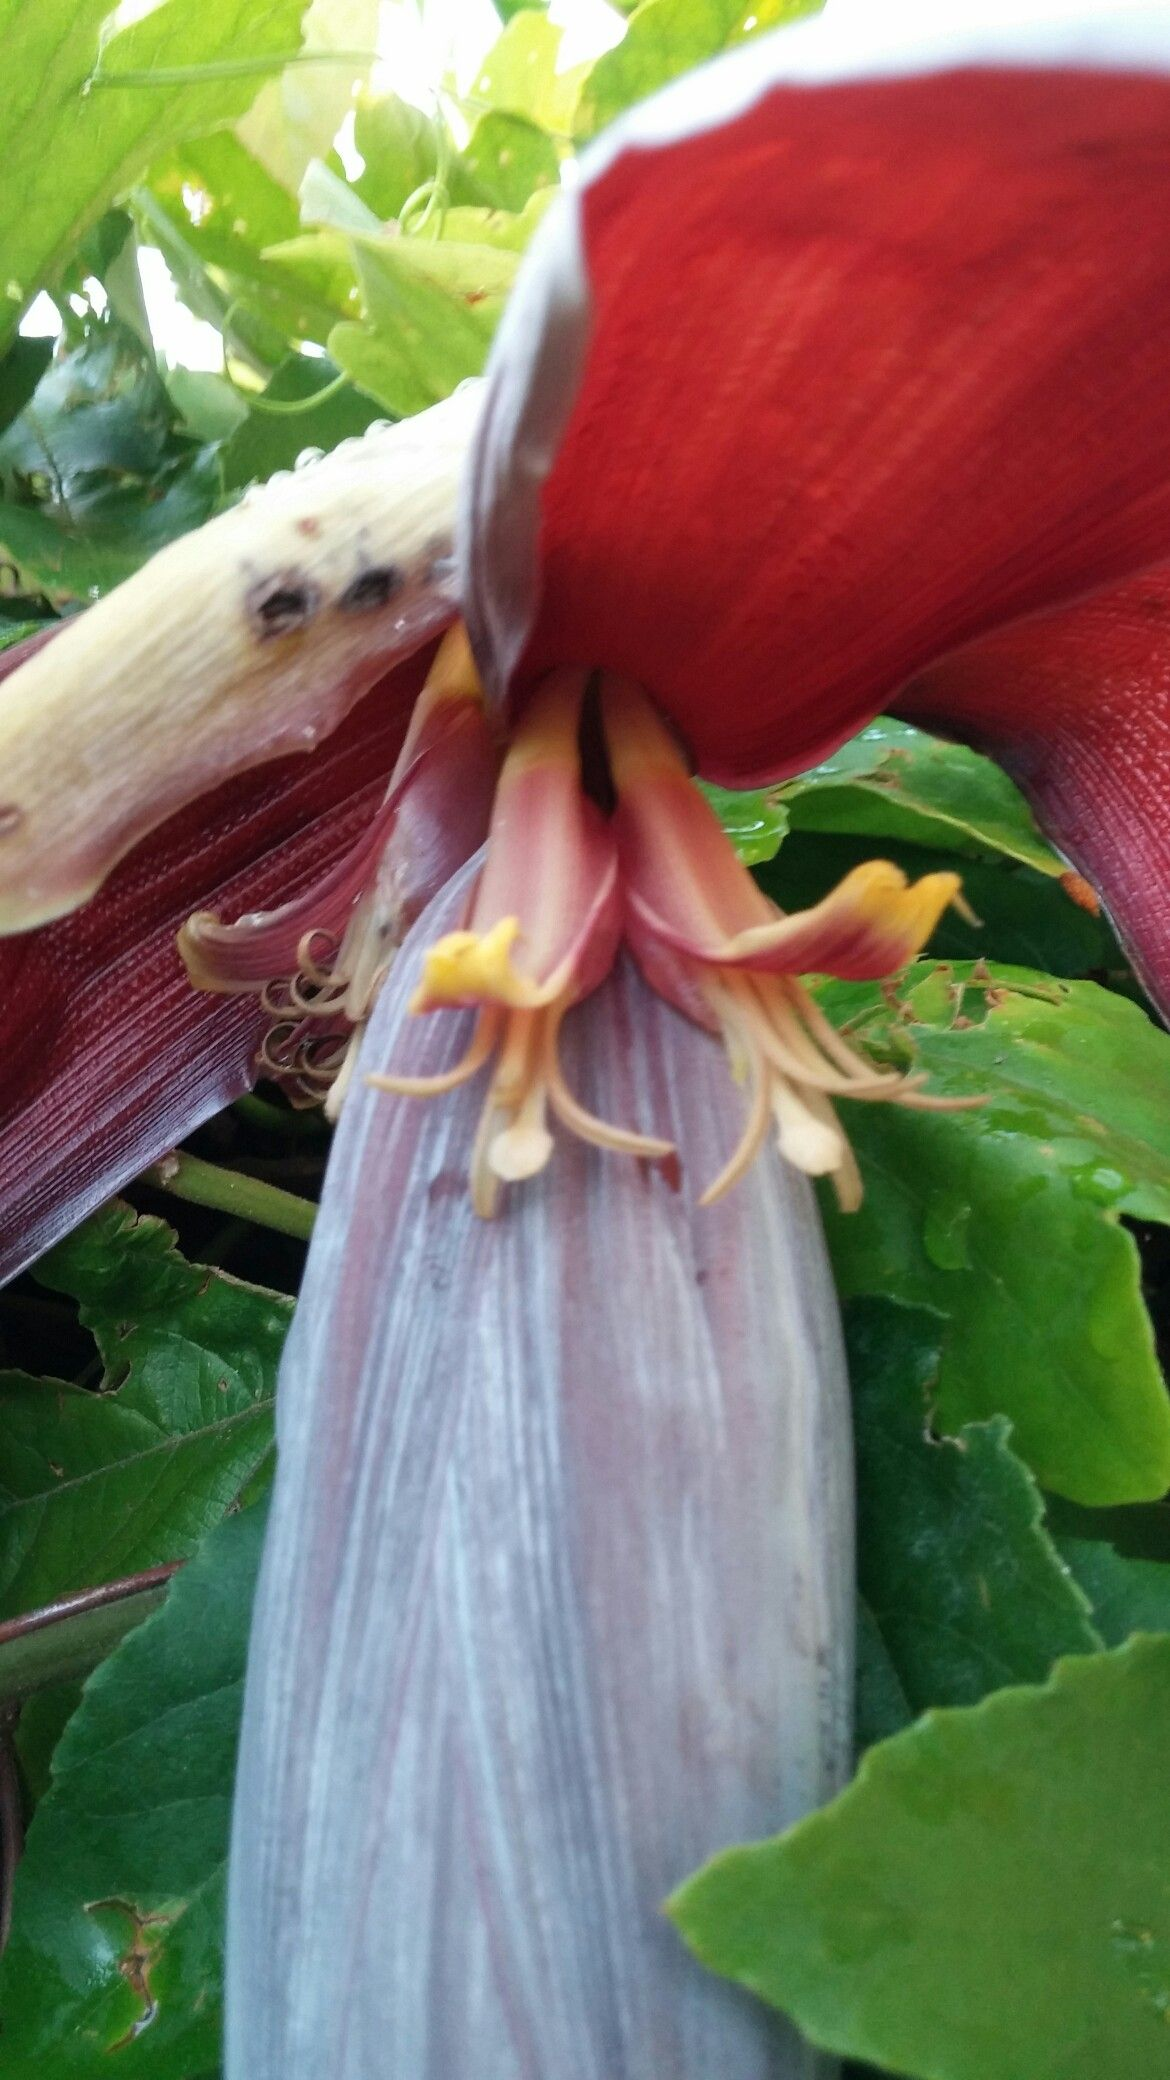 Banana flowers June 2016. No bananas ever formed and the plant died.